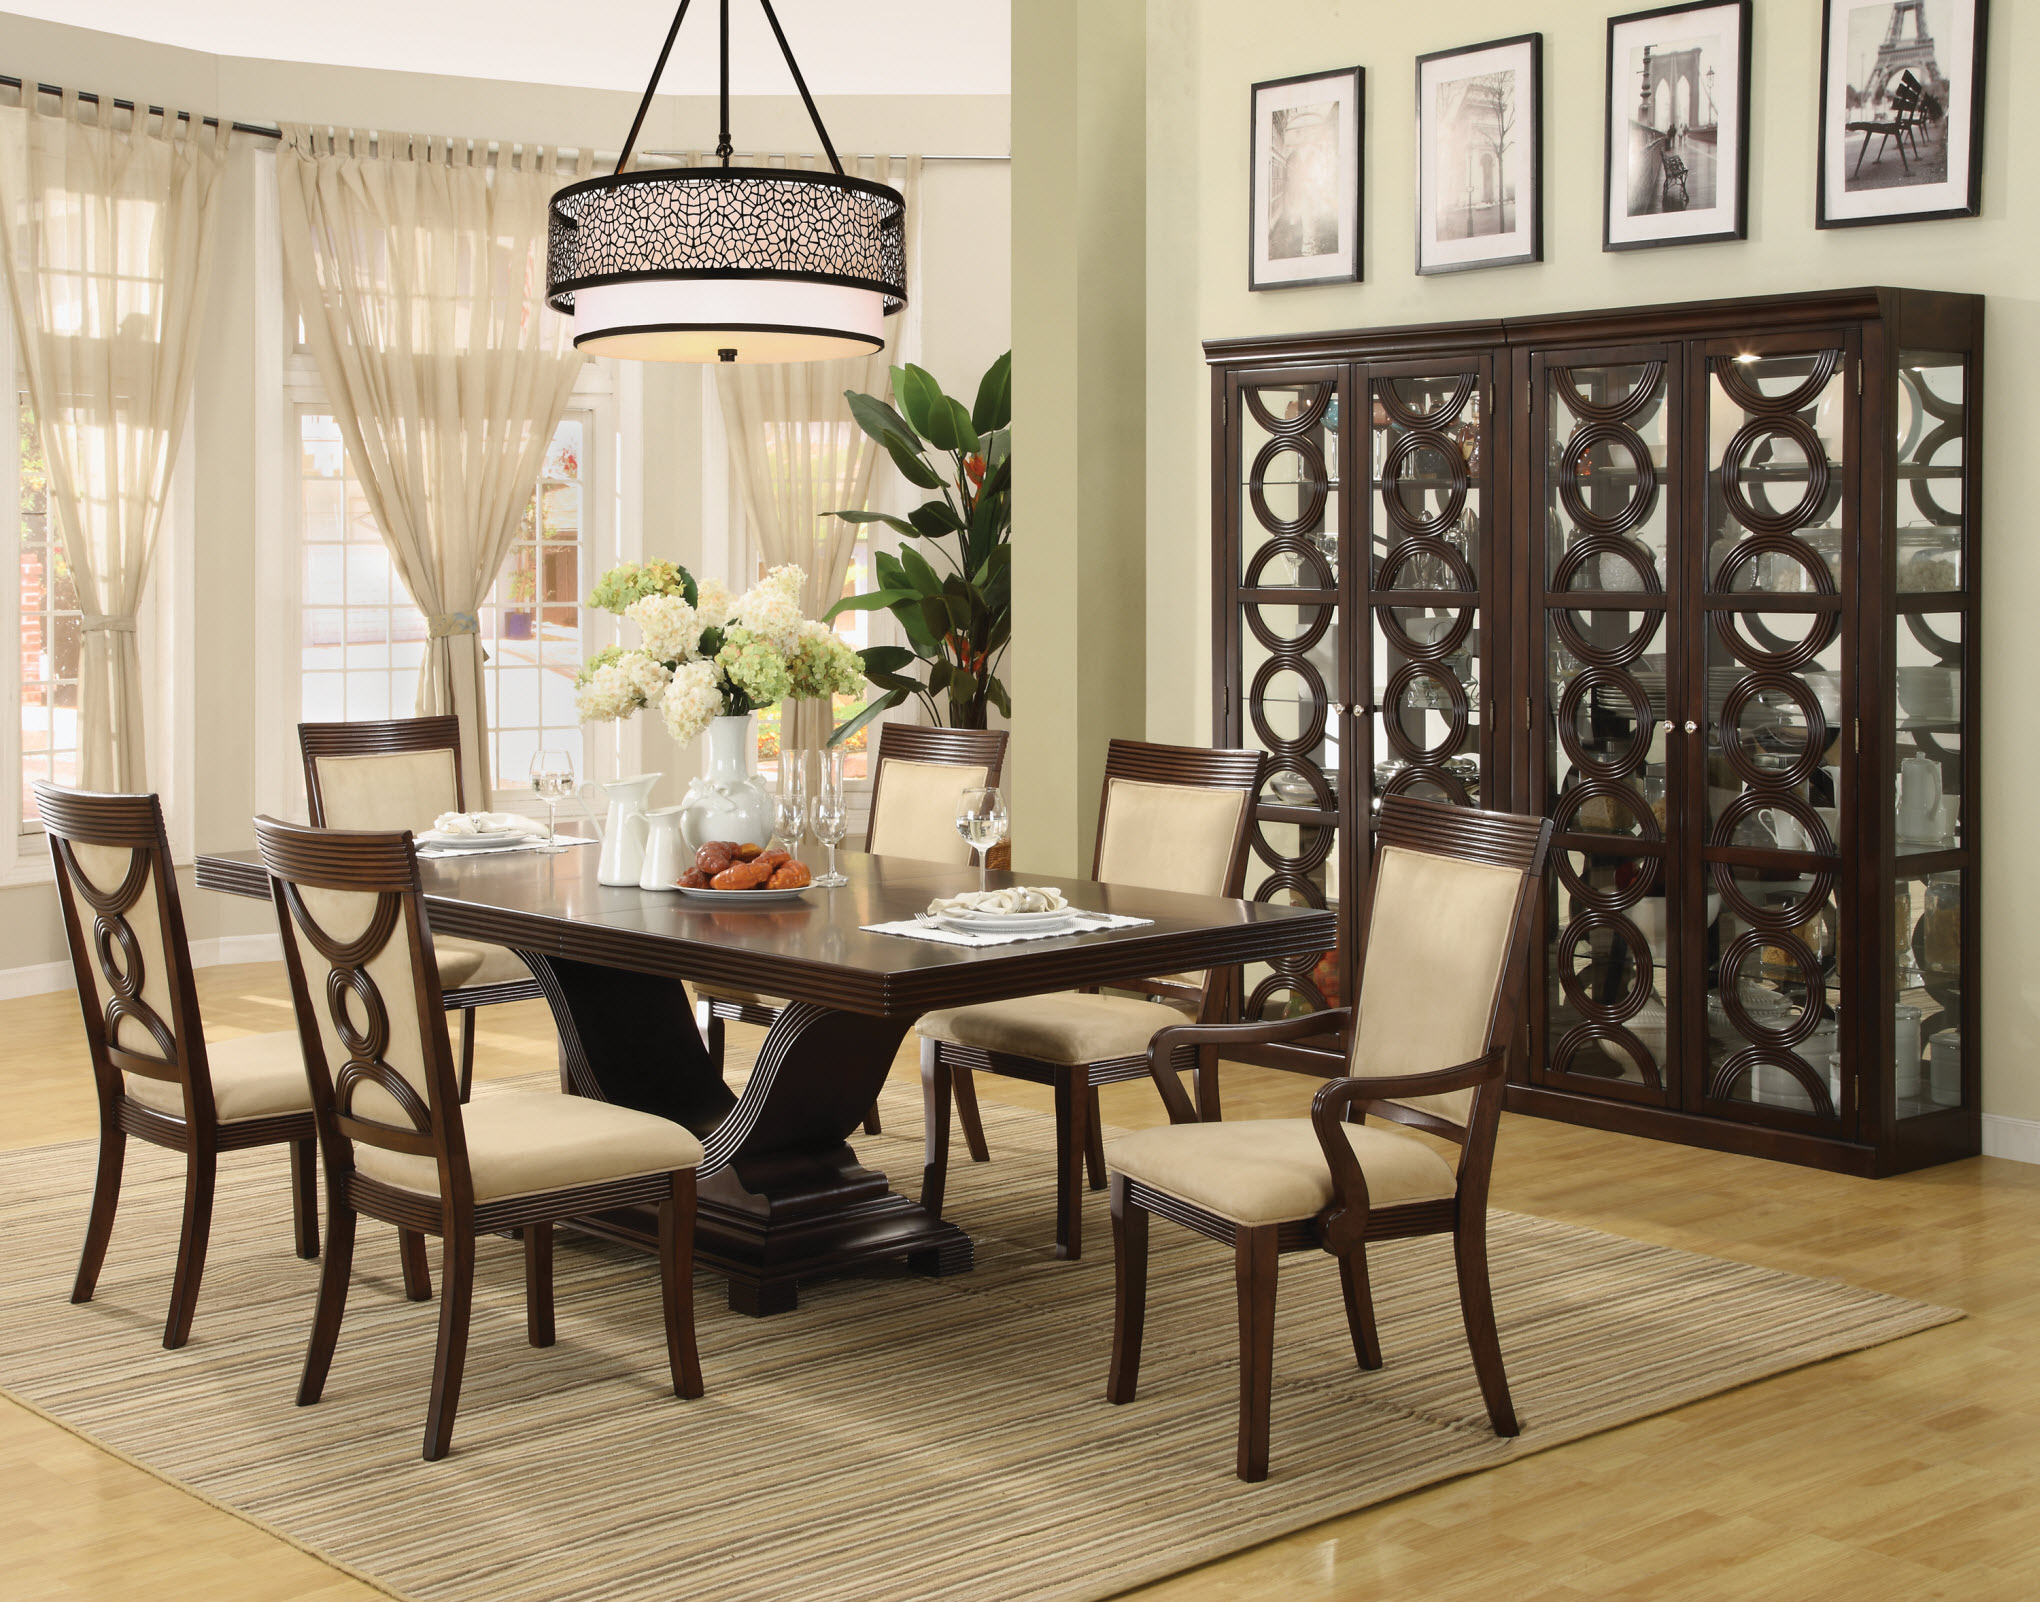 Breathtaking Formal Dining Room Sets With Buffet And Ceiling Light For